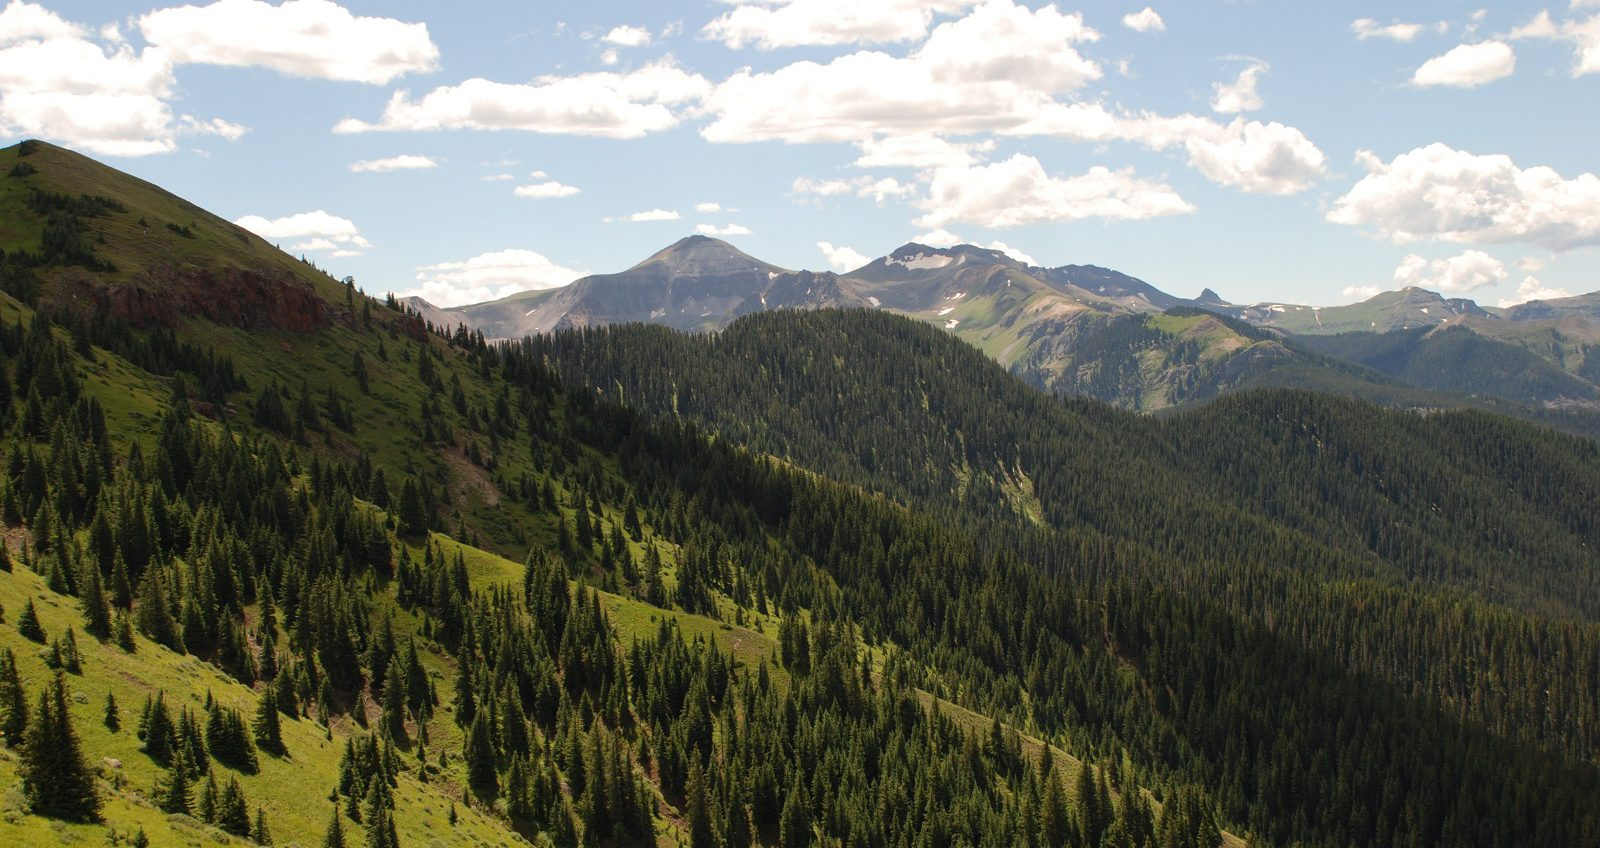 Explore the CDT through the scenic San Juans!